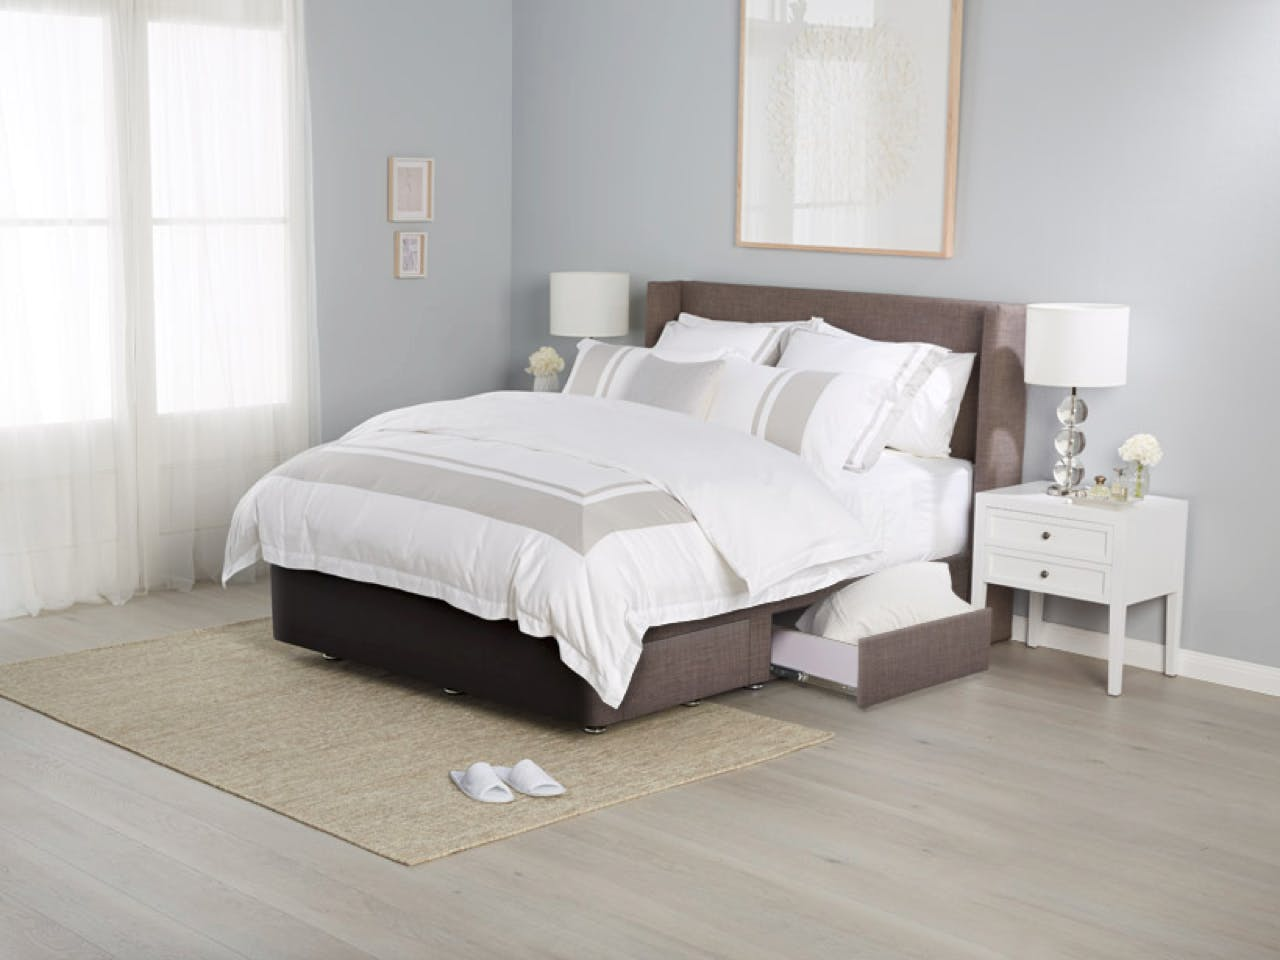 iii tempsmart bed all beds slumberland mattress size delux single